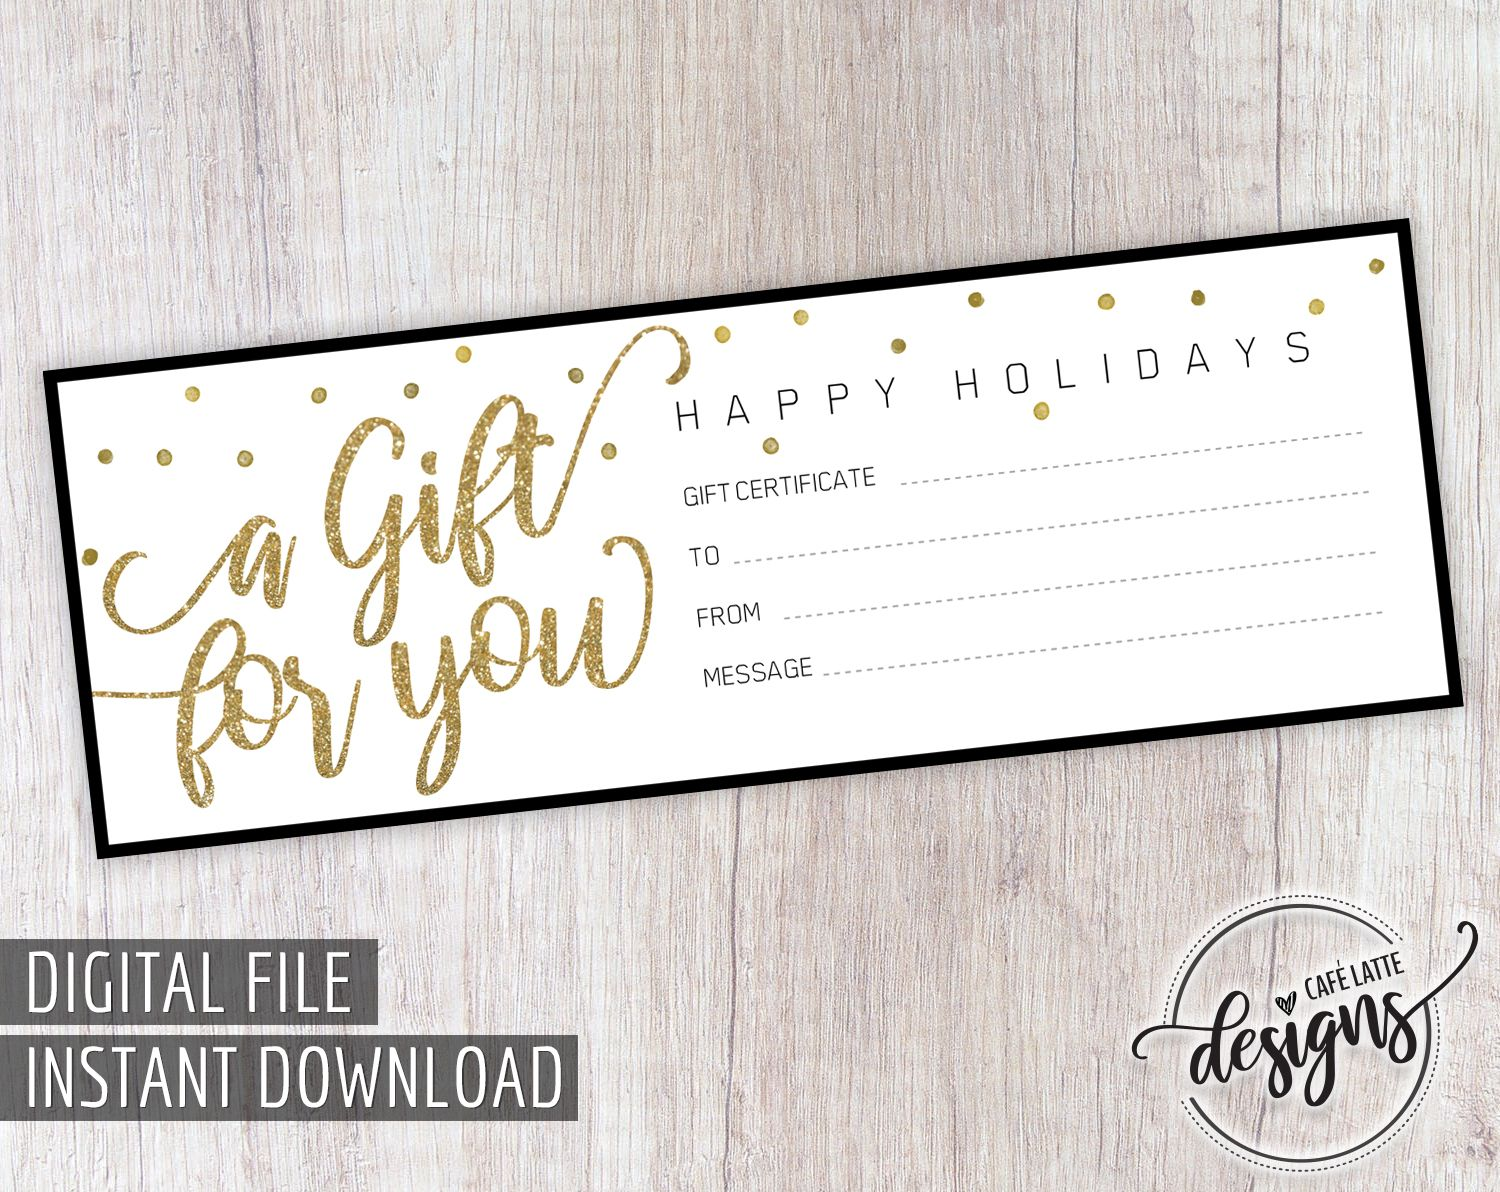 Christmas Gift Certificate Gift Certificate Printable Gift Coupon Gift Instant Download Gift Idea Holiday Gift Black Gold Gift Card Printable Gift Certificate Christmas Gift Certificate Holiday Gift Certificates